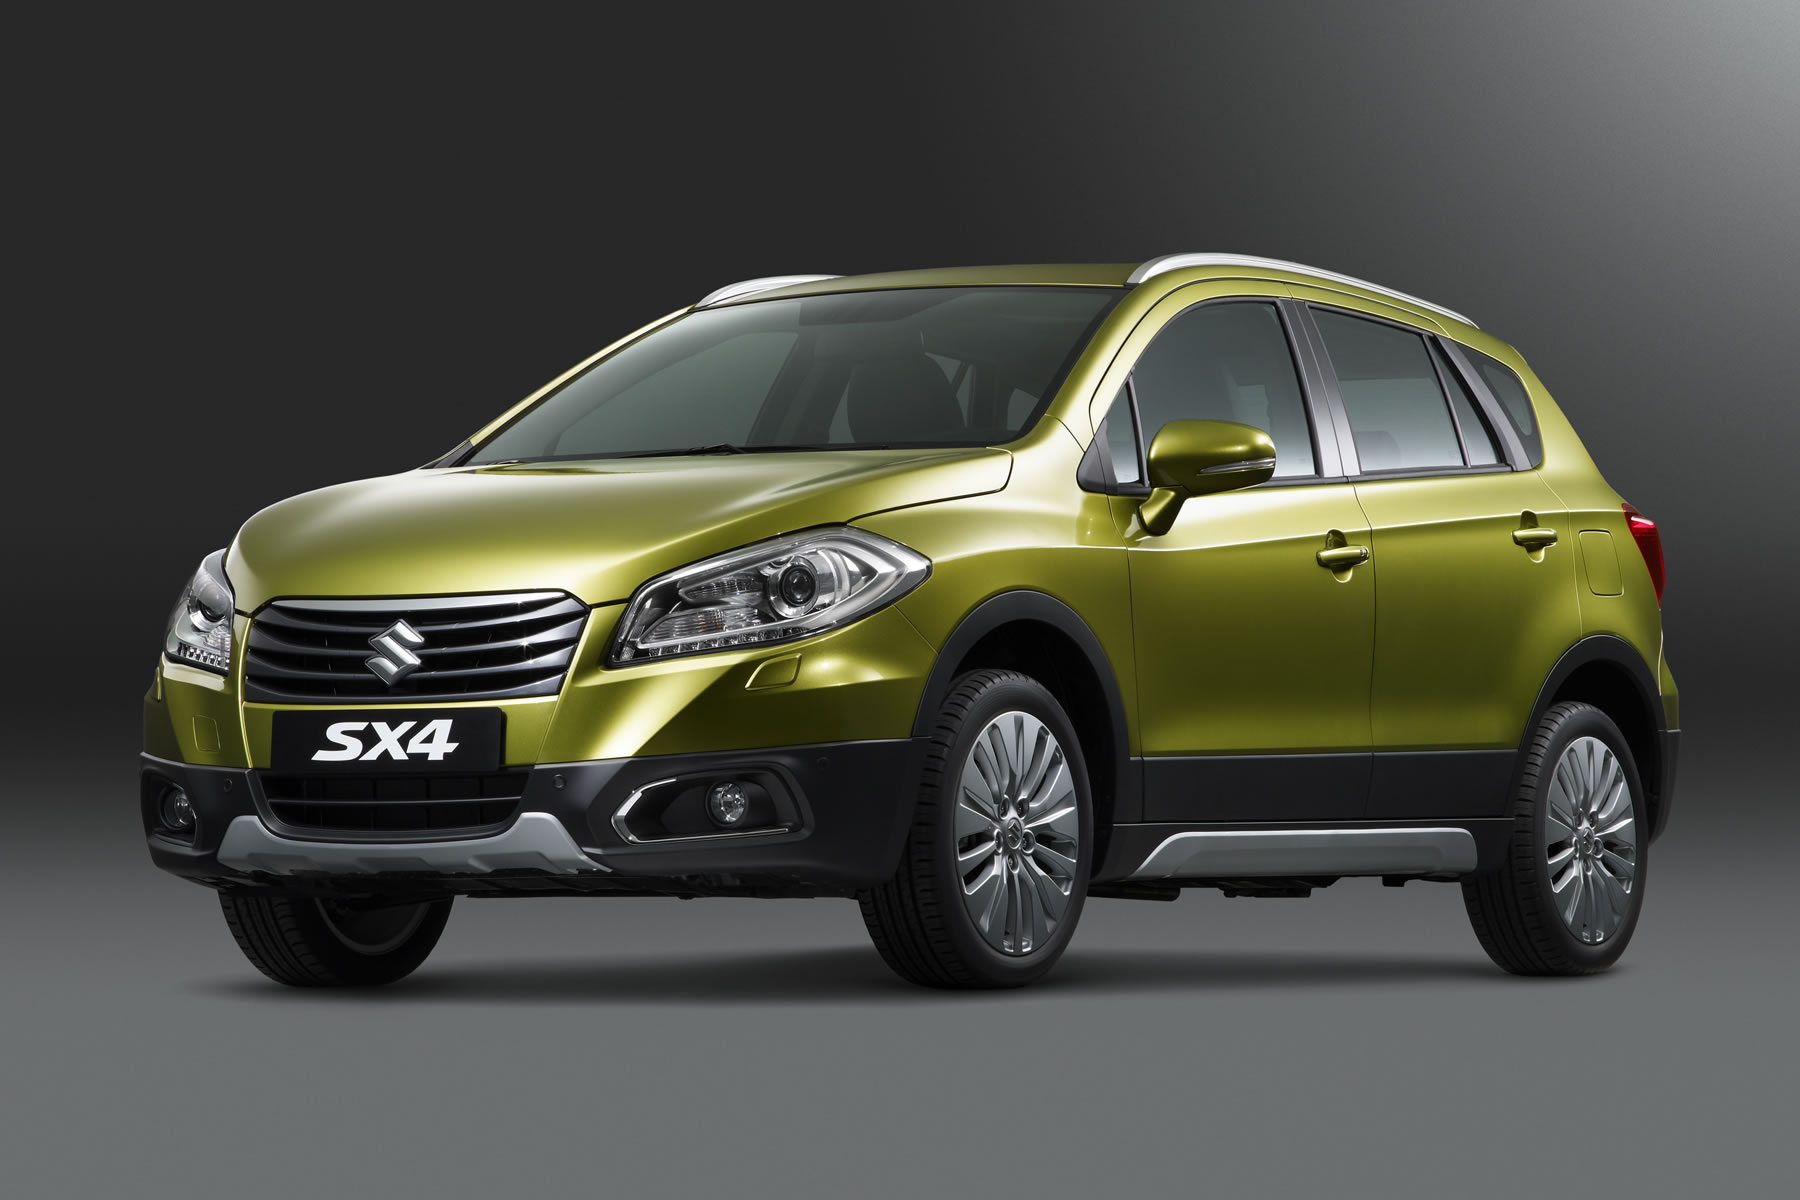 suzuki sx4 specs photos 2013 2014 2015 2016 autoevolution. Black Bedroom Furniture Sets. Home Design Ideas